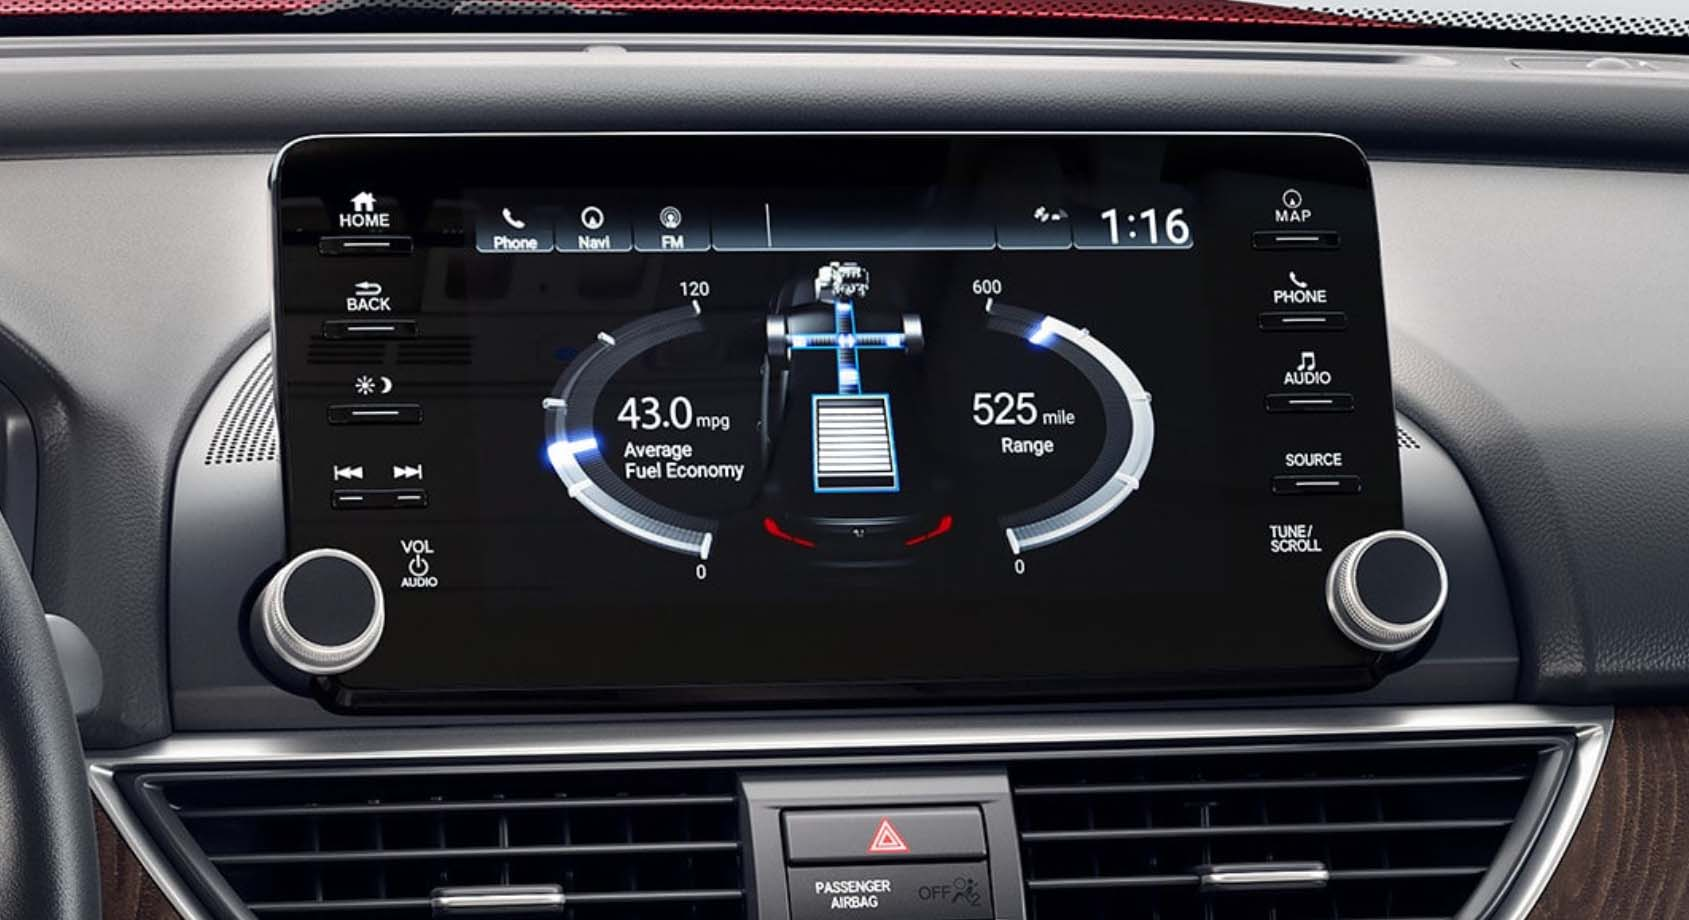 Honda Accord infotainment